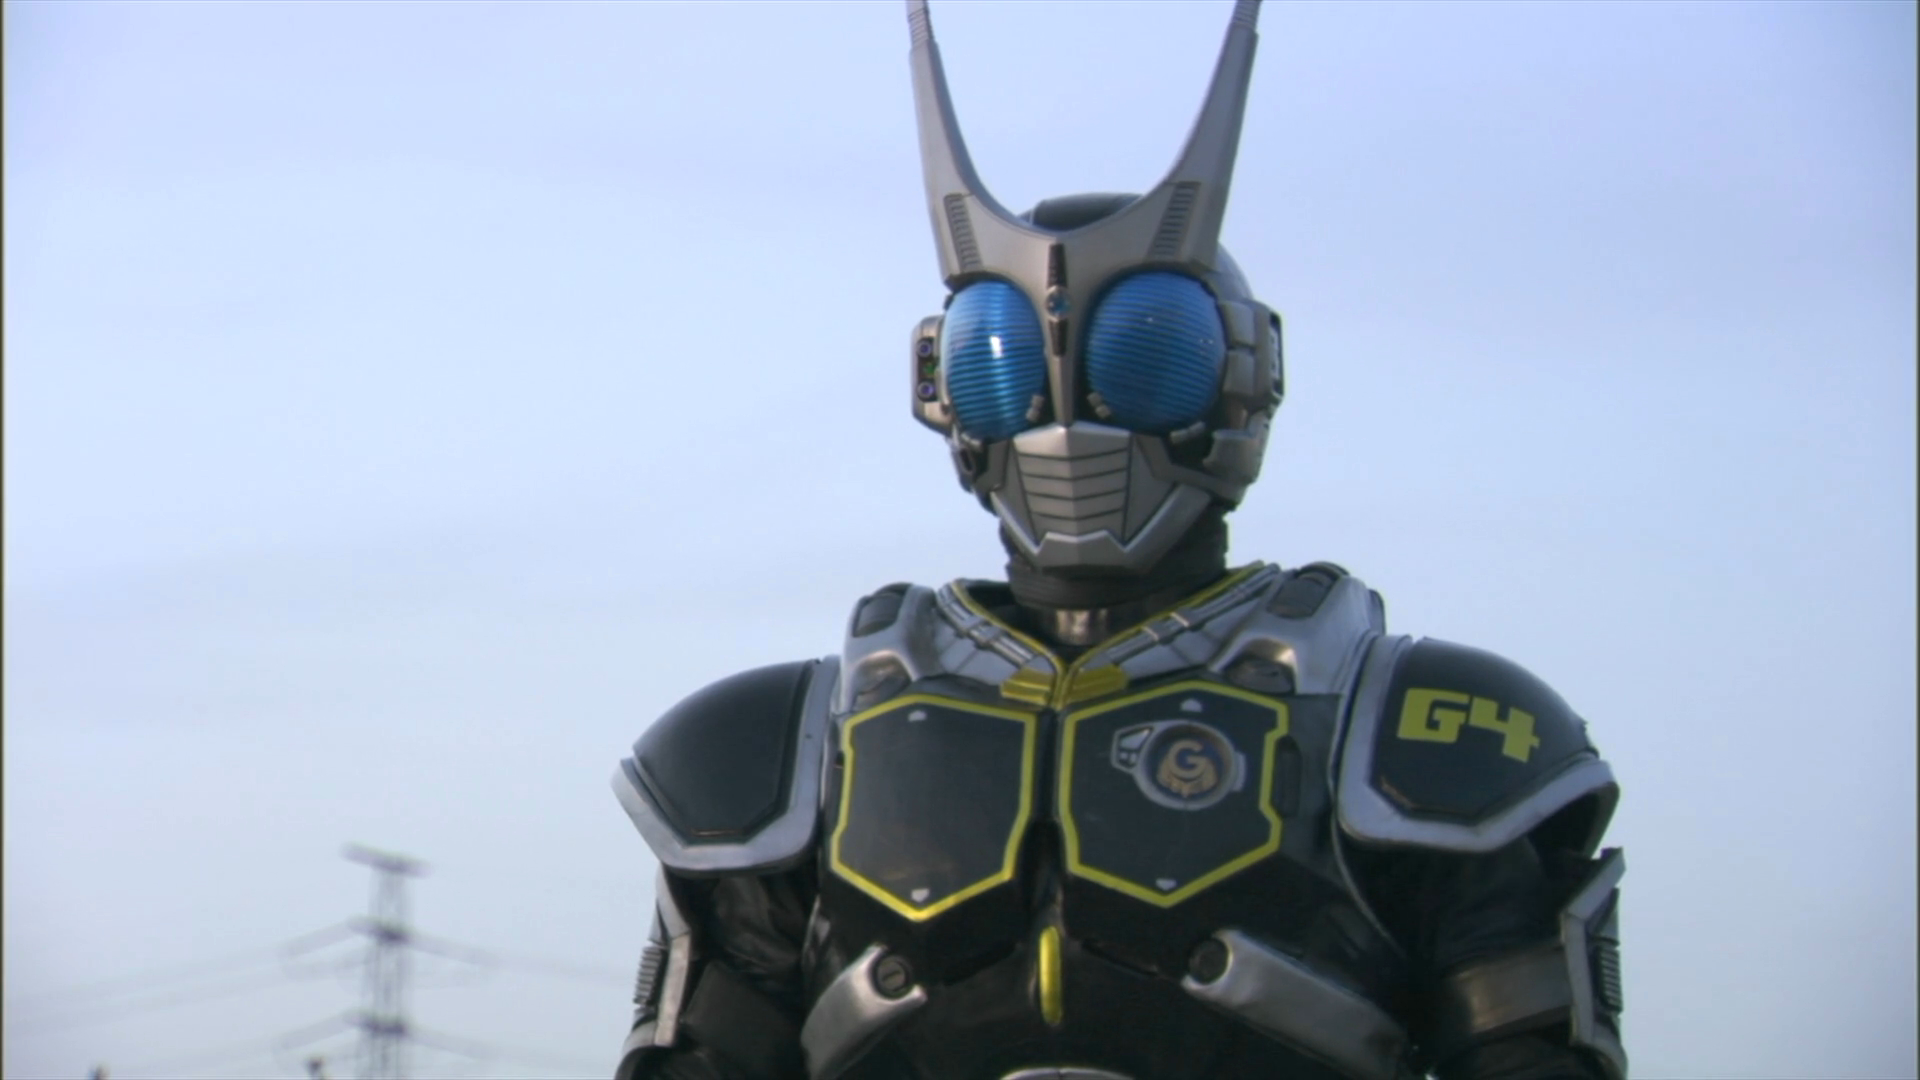 http://vignette2.wikia.nocookie.net/kamenrider/images/0/00/G4_in_Episode_Yellow.png/revision/latest?cb=20140419085708